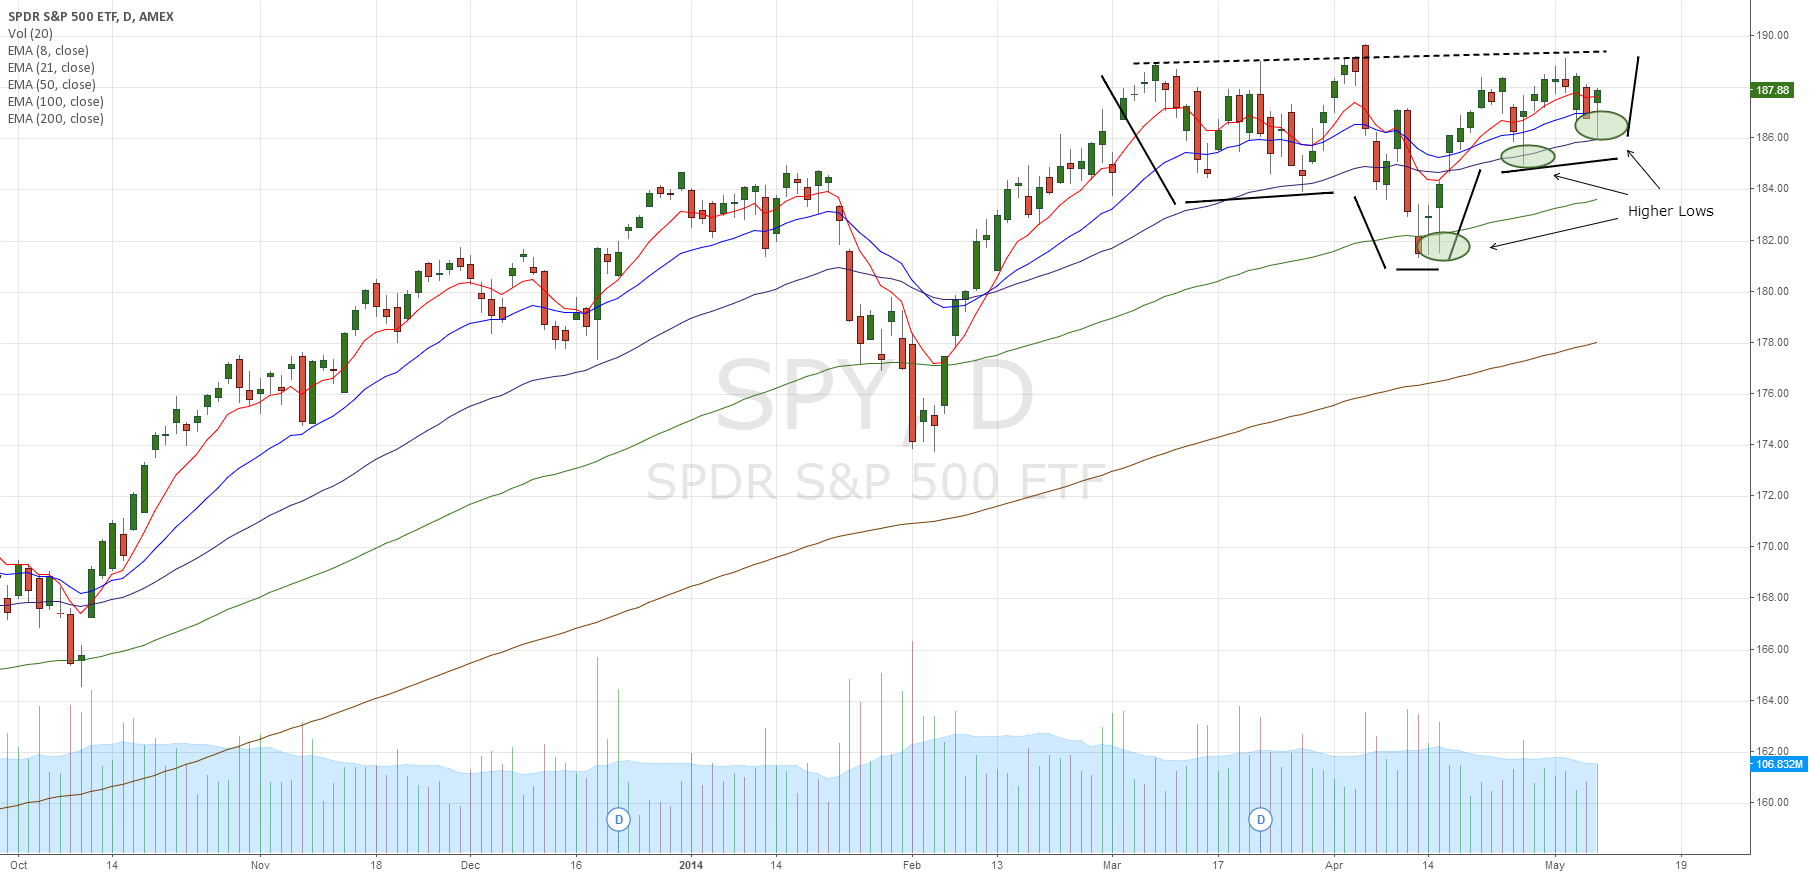 SPY inverse Head and Shoulders, higher lows